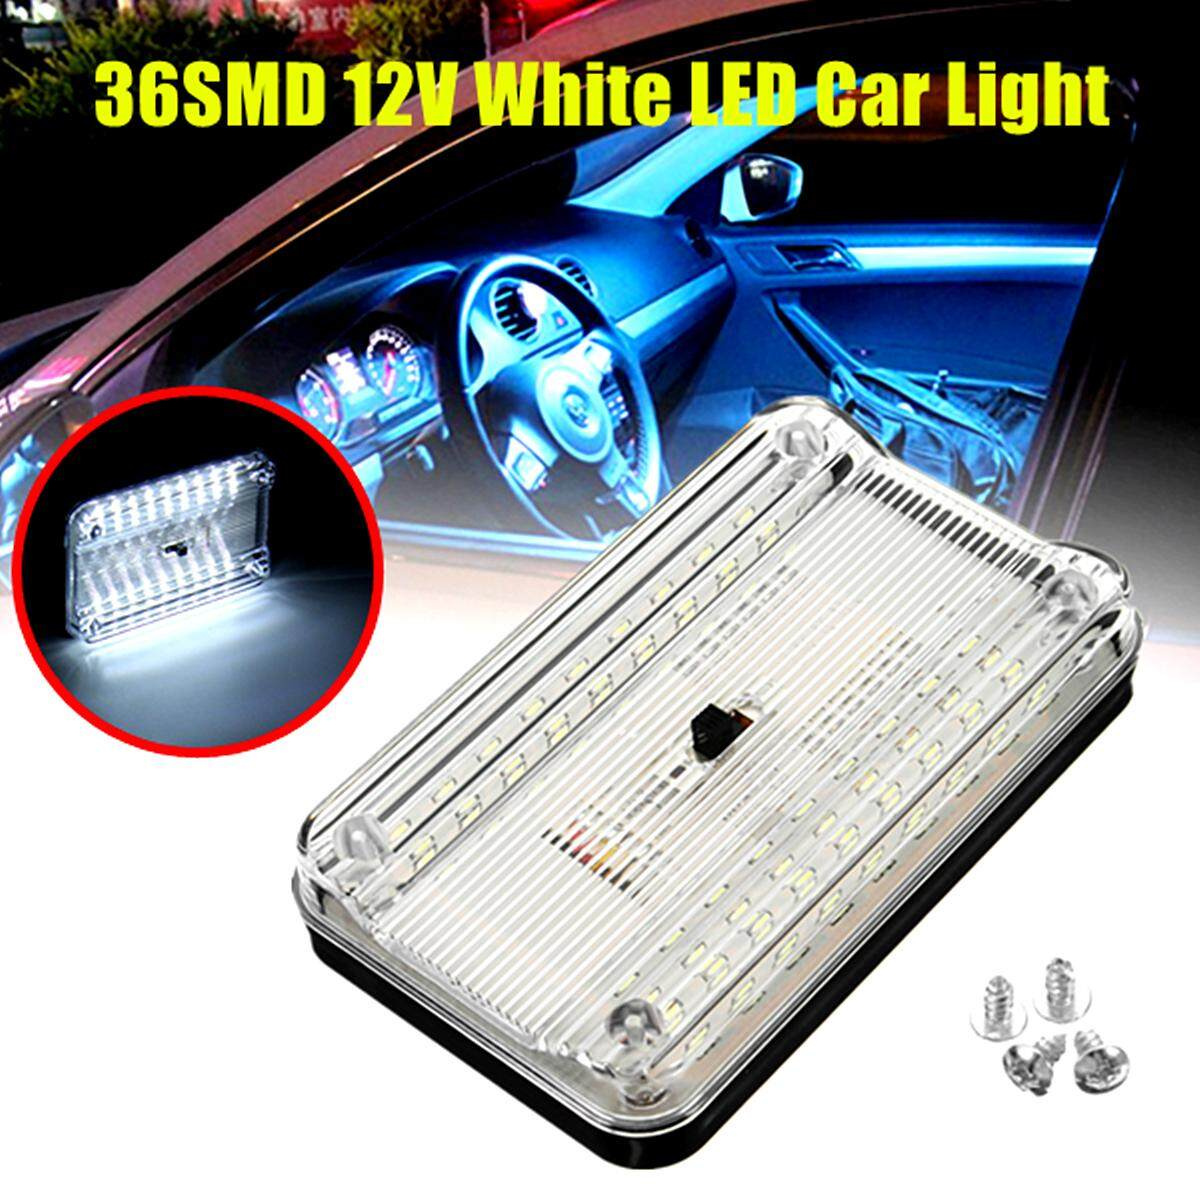 36SMD 12V White LED Car Light Source Interior Lights Ceiling Dome Roof Reading Lights Lamp On/Off Switch